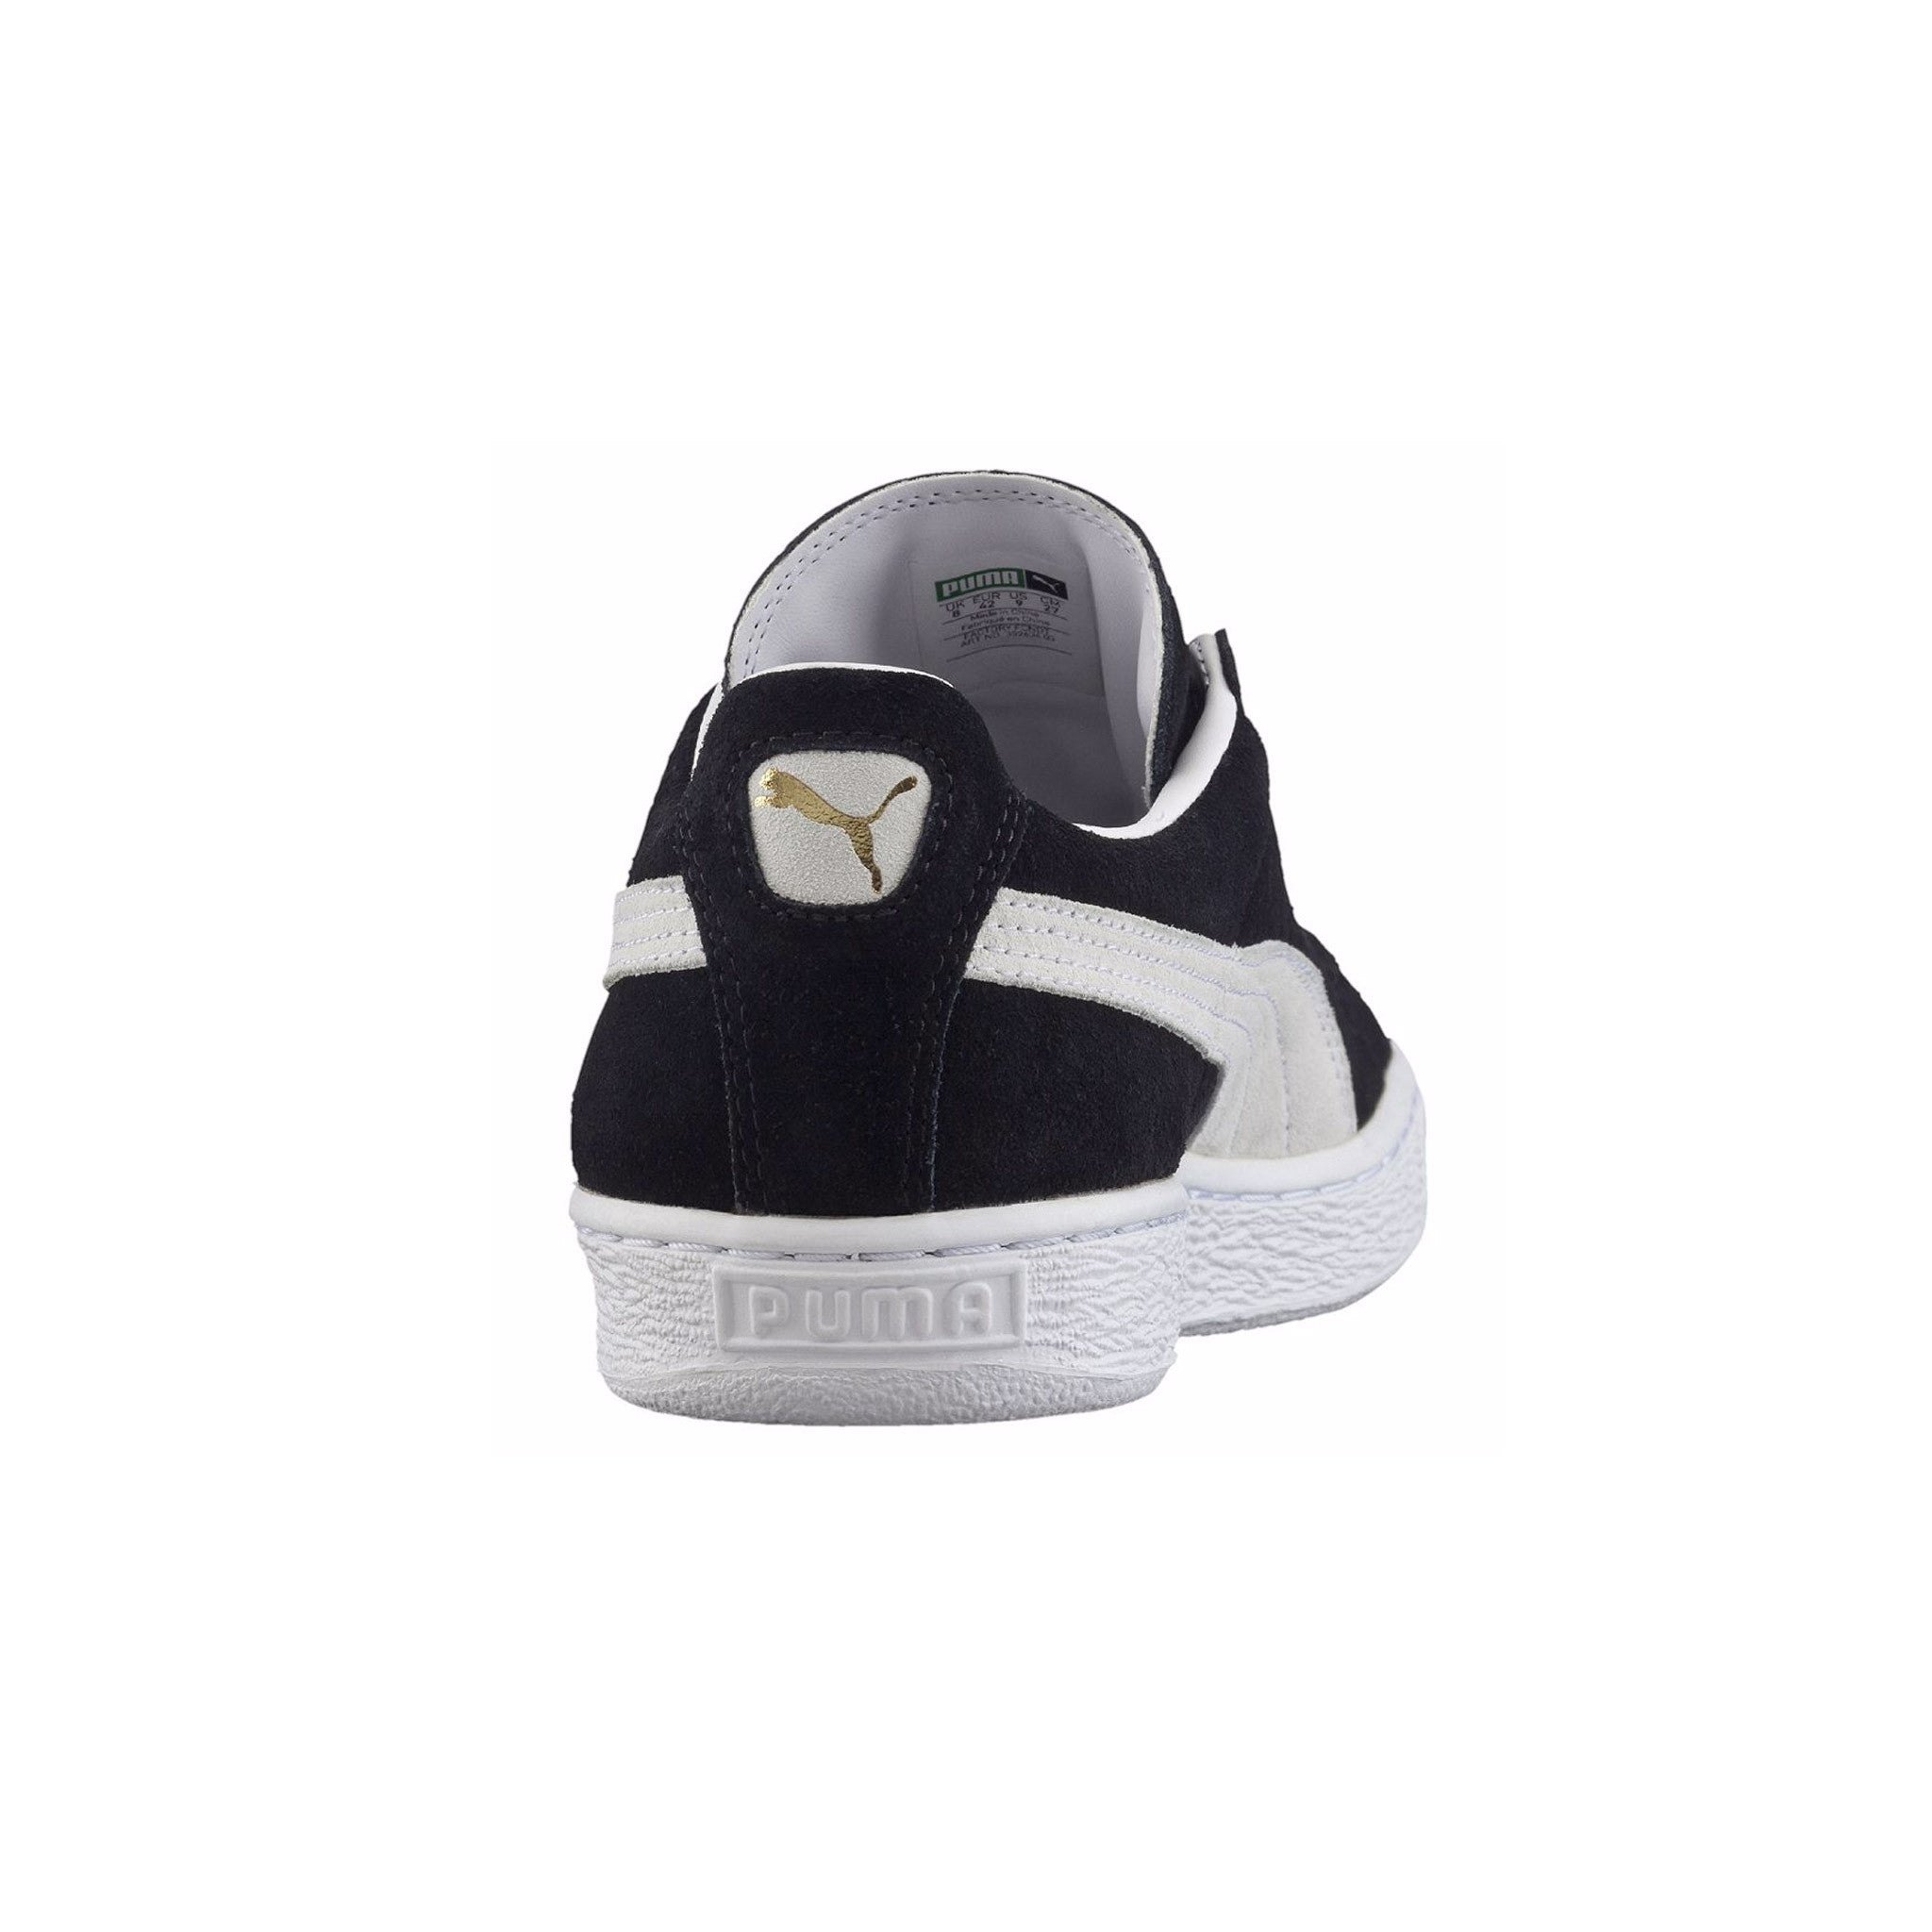 Suede Classic Puma Sneakers Black Back View